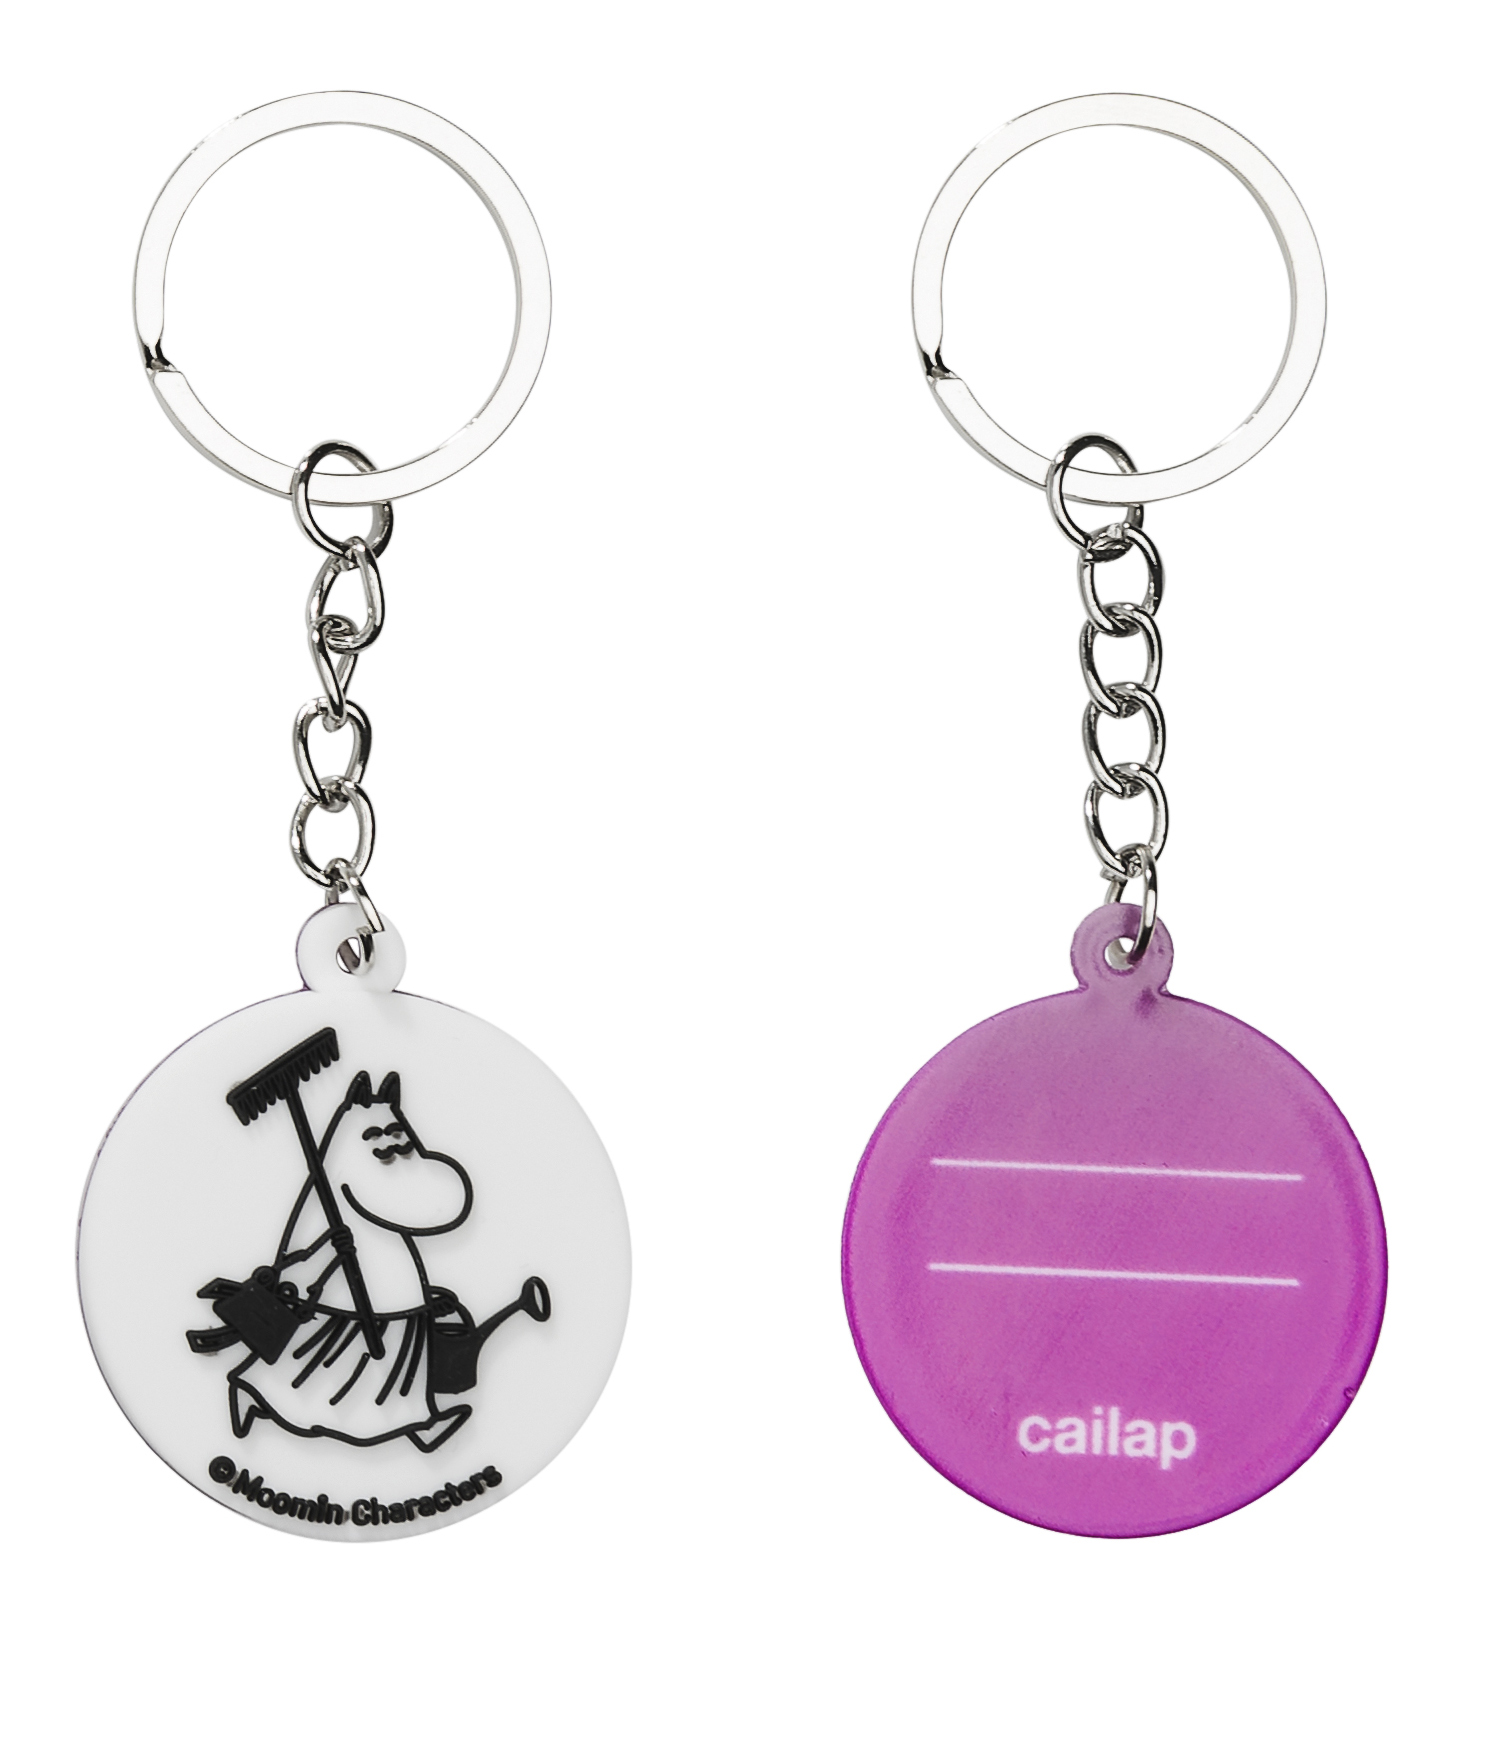 CAILAP KEY RING WITH MOOMINMAMMA